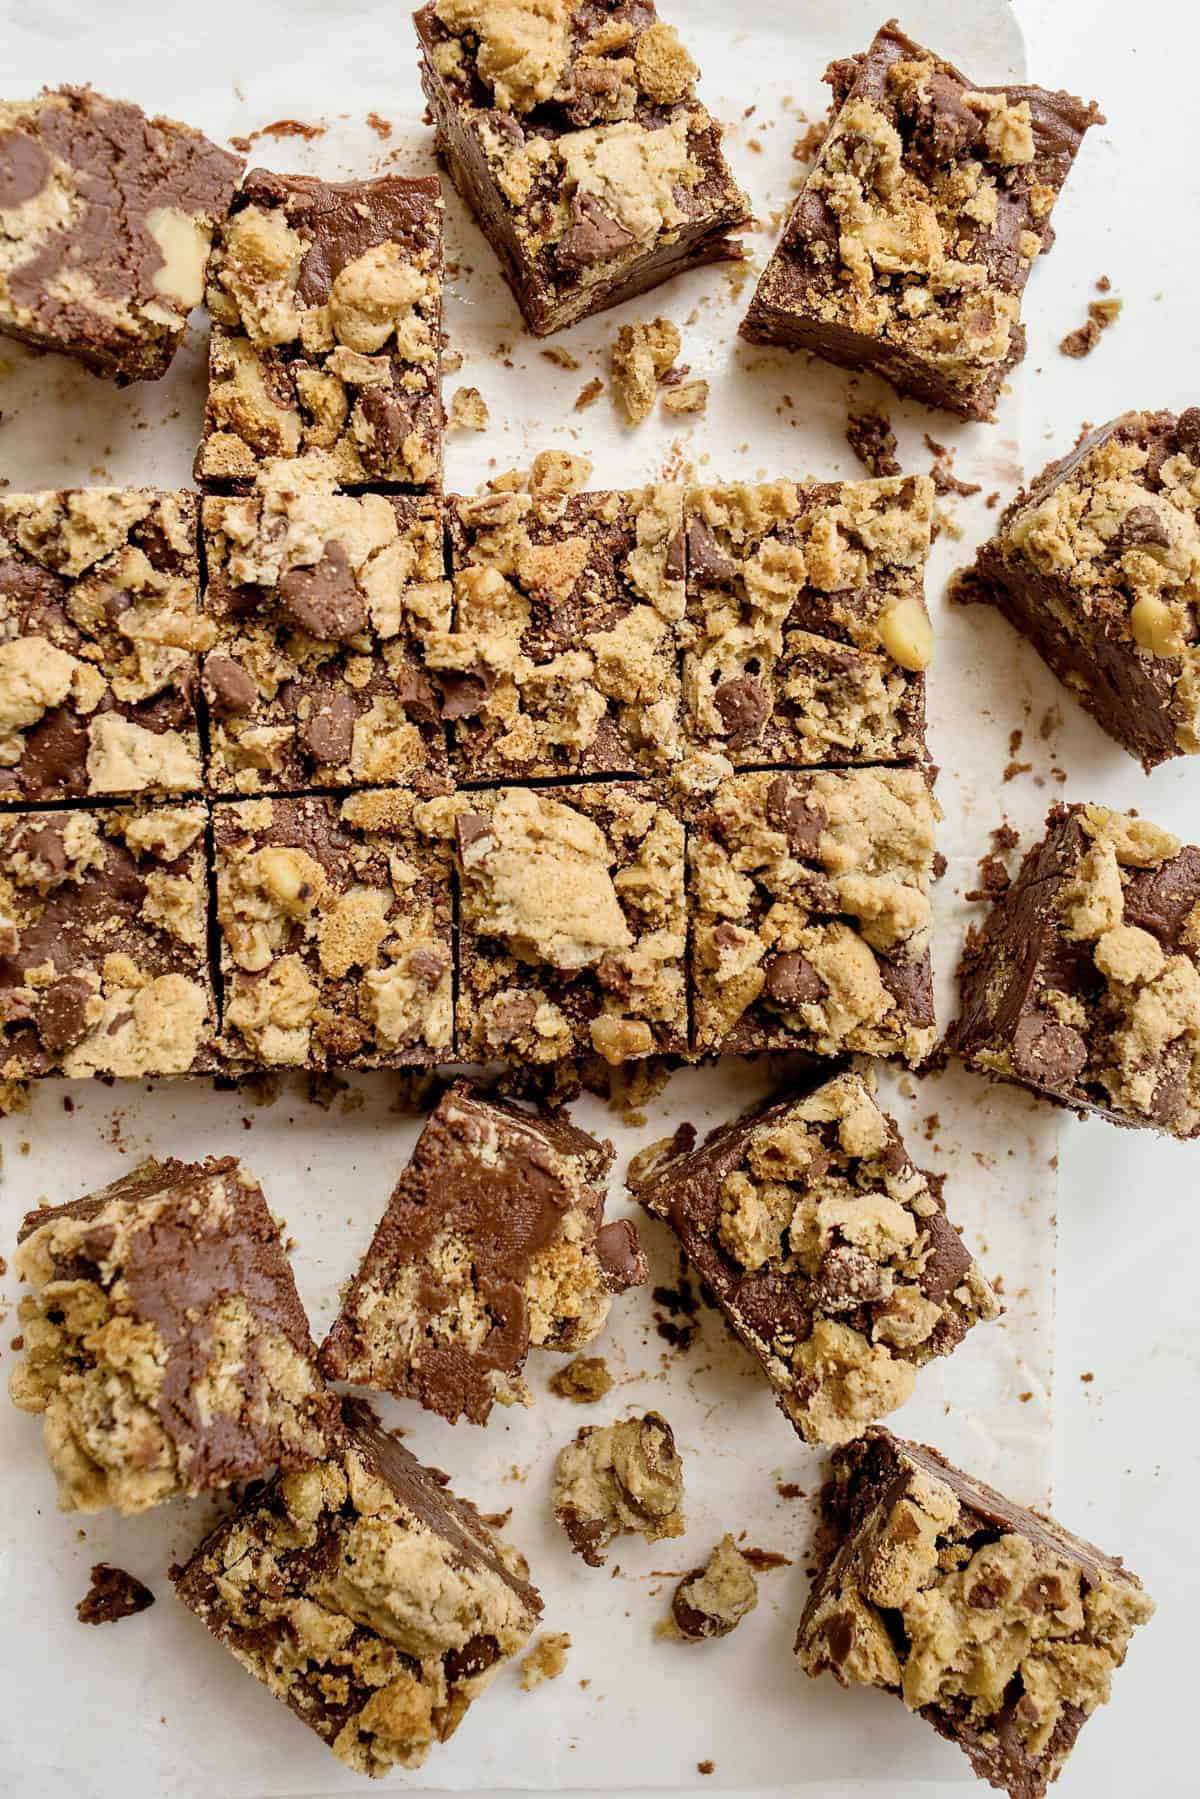 Chocolate Chip Cookie Fudge by The BakerMama